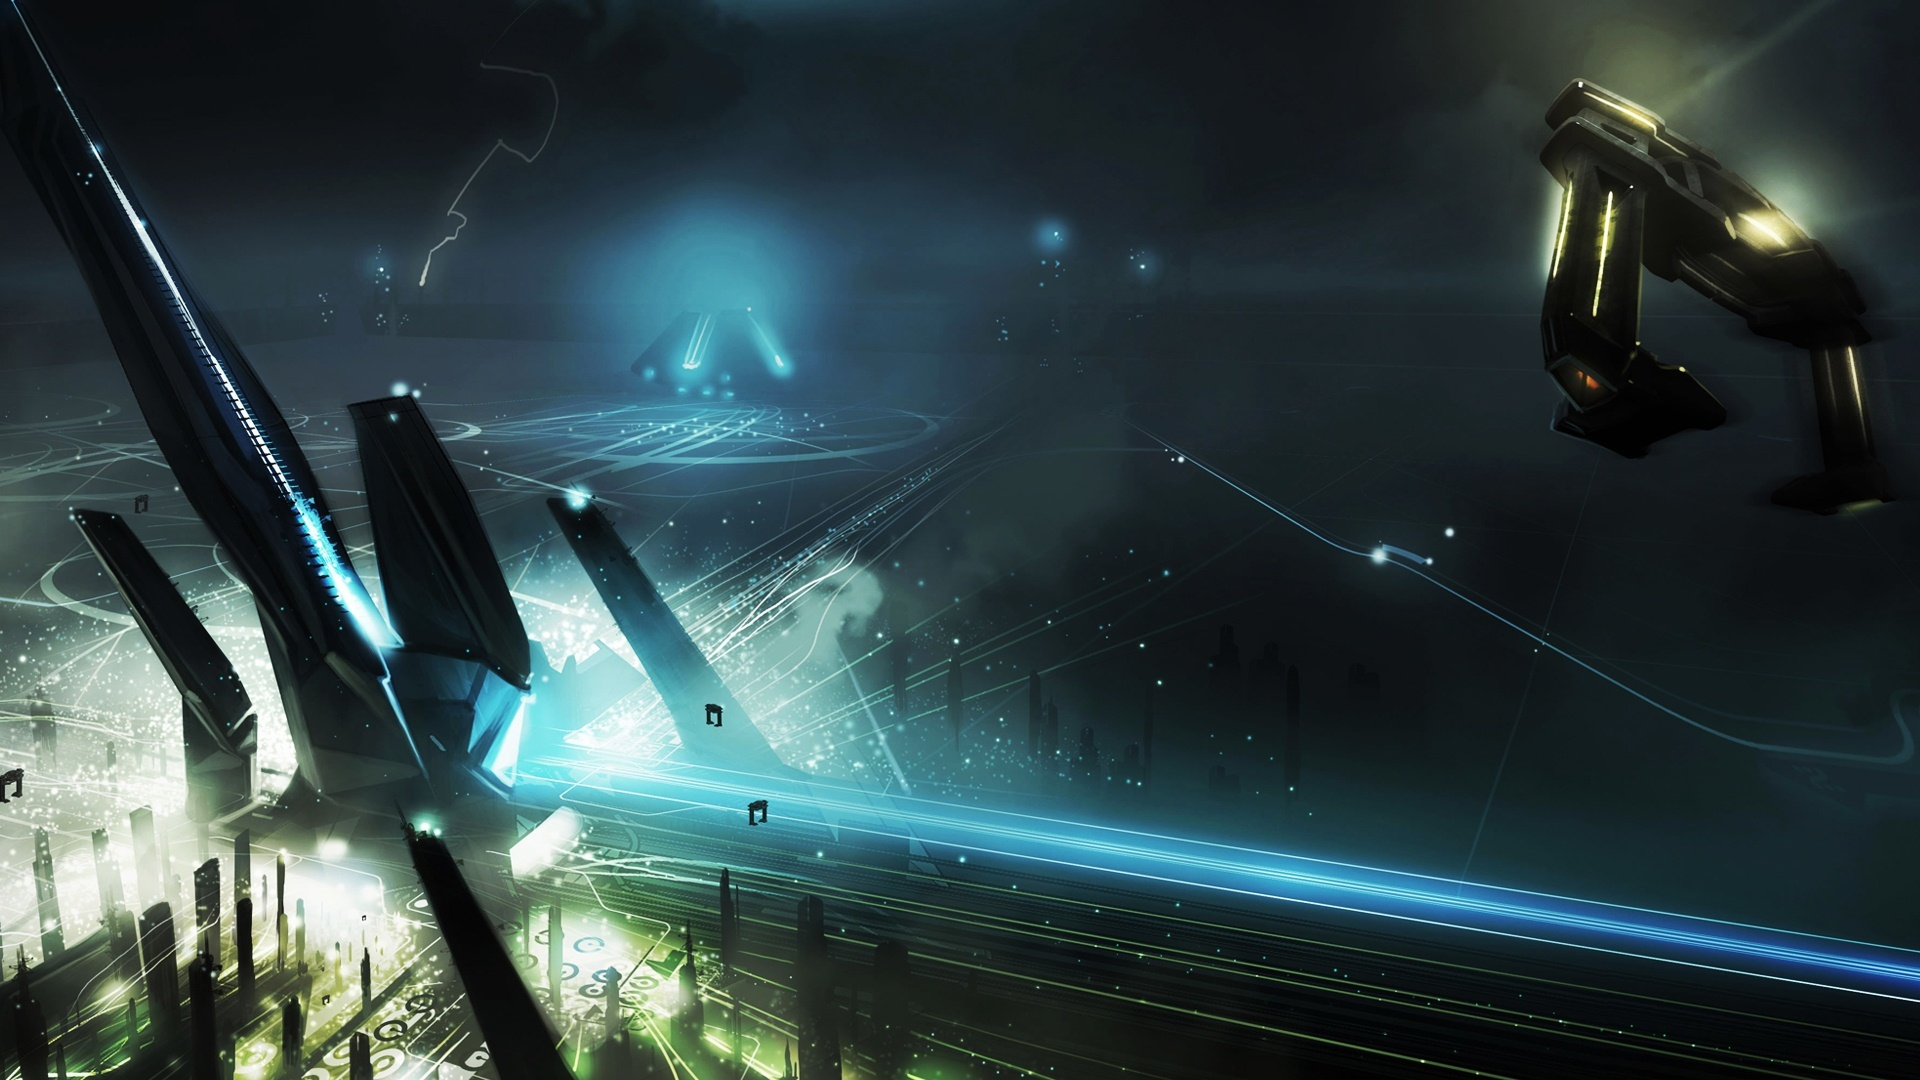 TRON Legacy HD Wallpaper Background Image 1920x1080 1920x1080